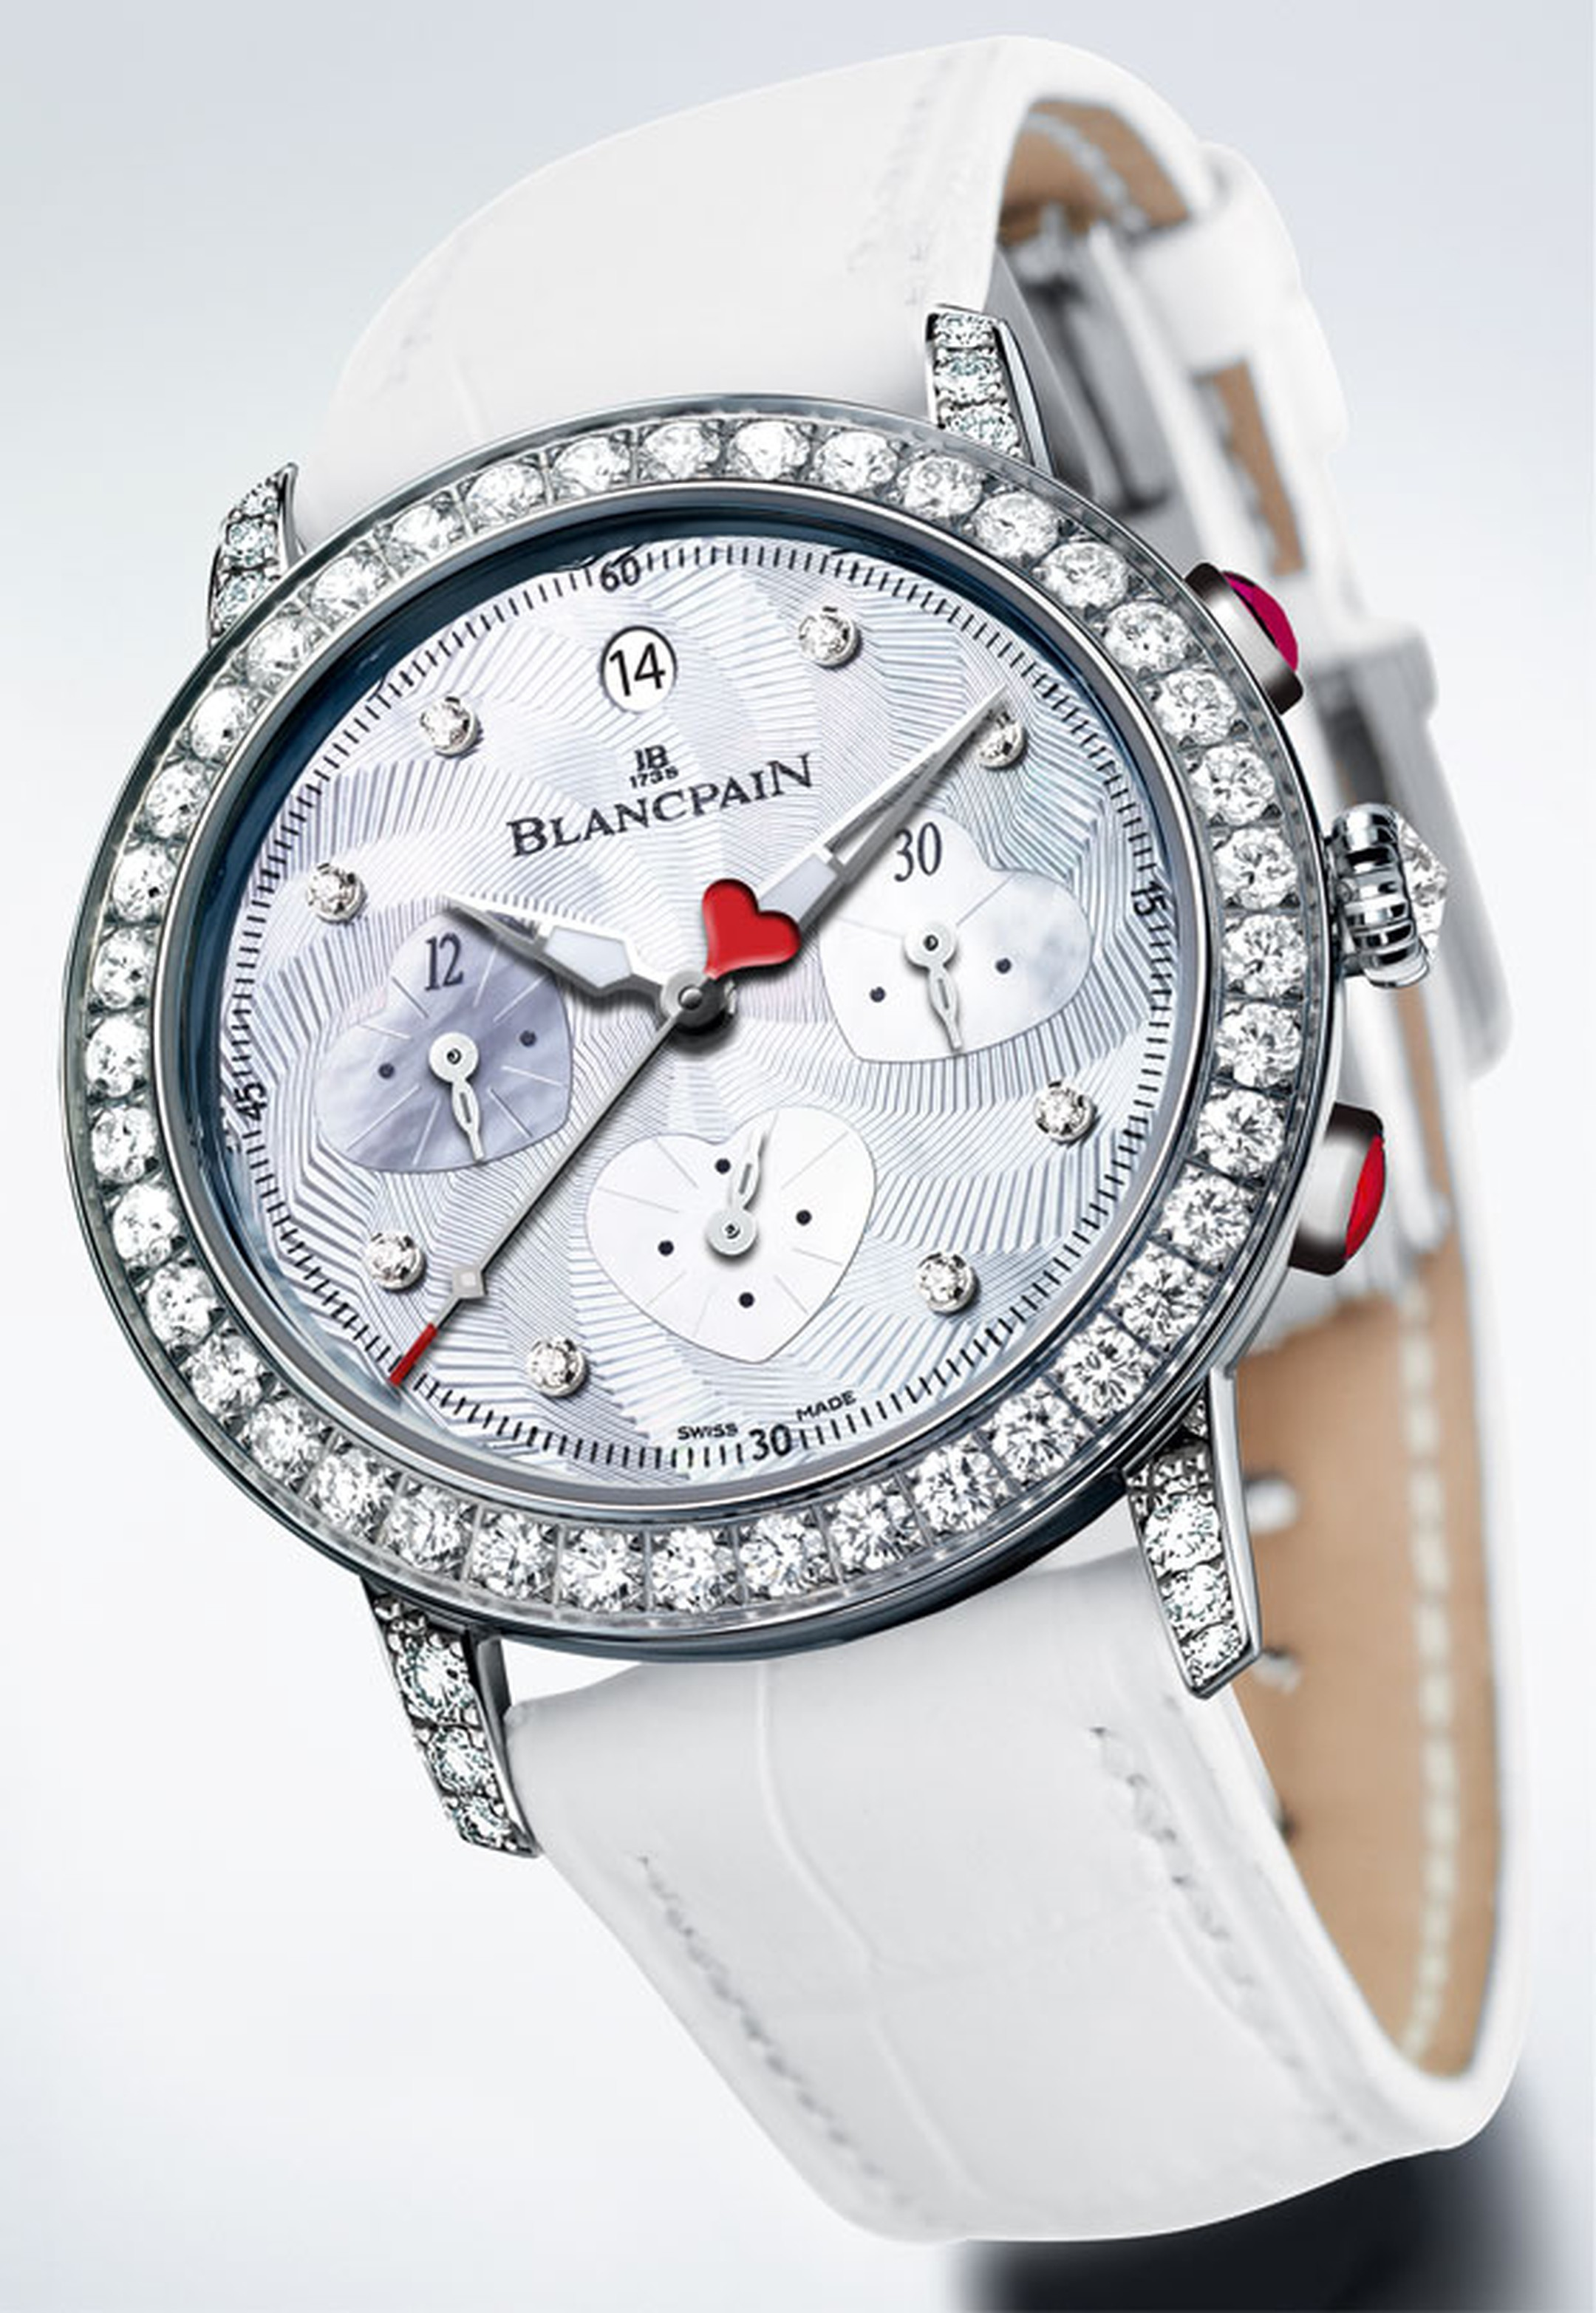 Valentines - Blancpain The Saint-Valentin Chronograph watch Calibre F185 in white gold with diamonds, cabochon-cut rubies with a white leather strap POA jpg